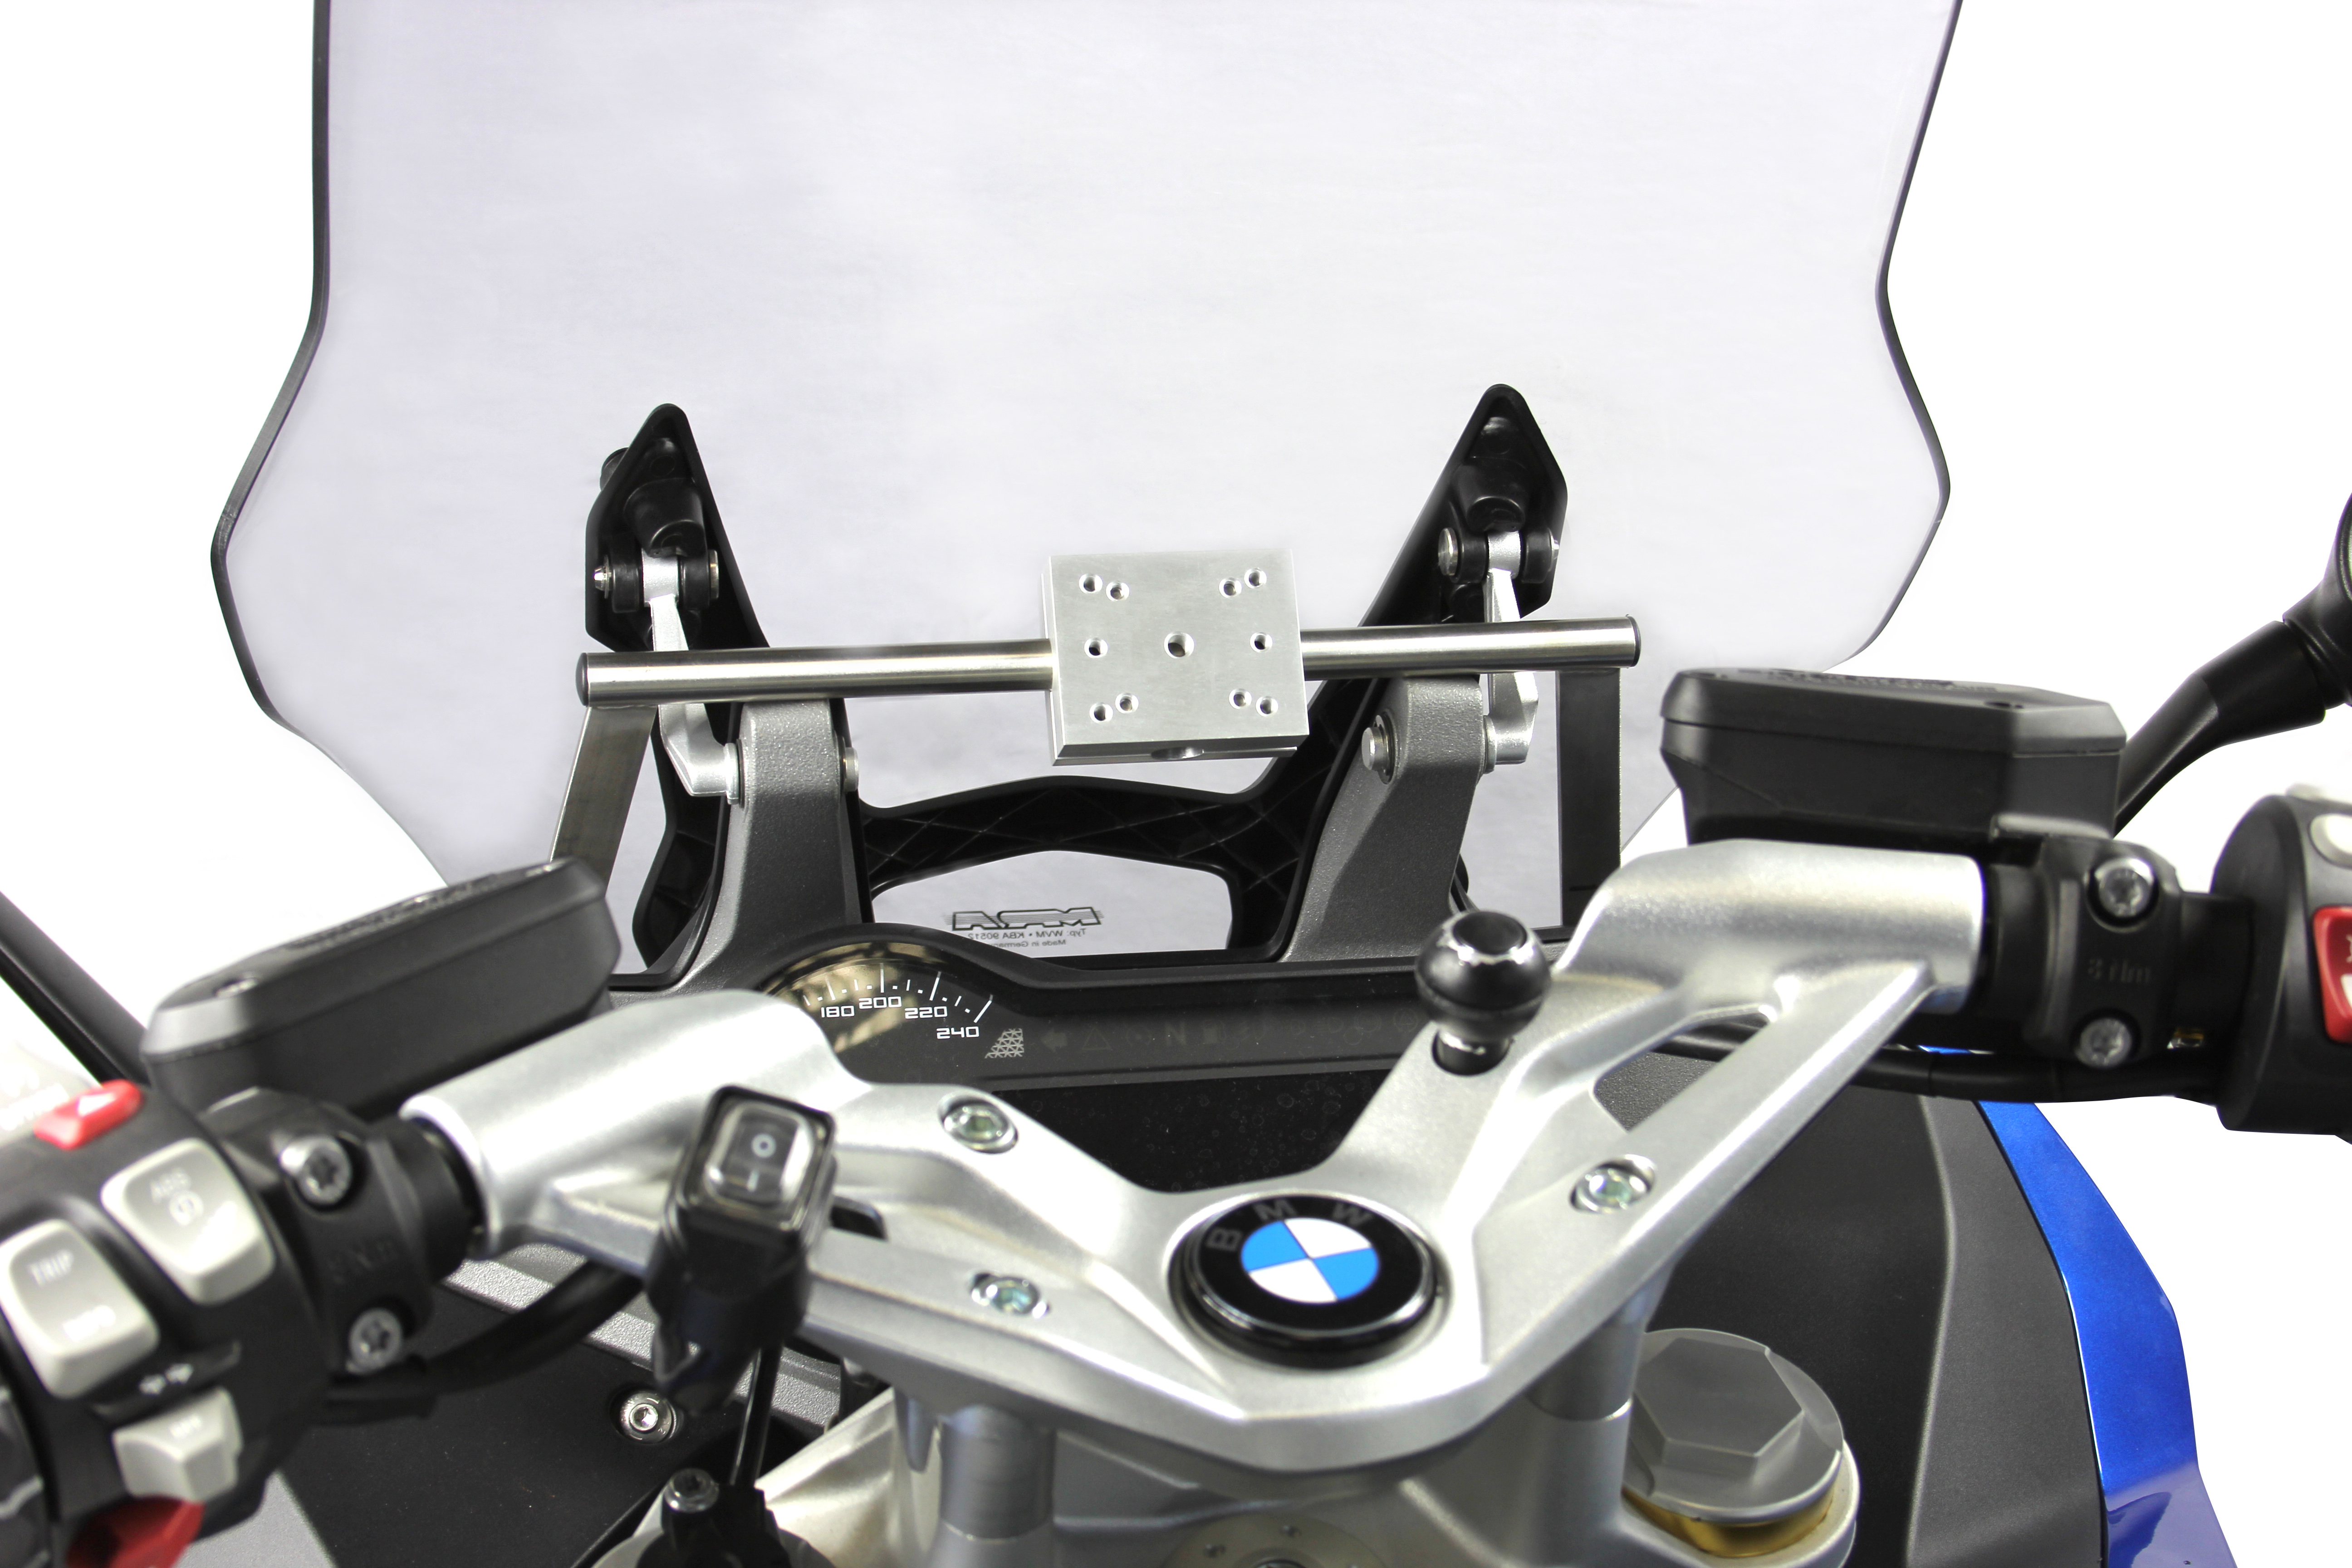 gps mount for bmw r 1200 rs lc 2015 motorcycle accessory hornig parts for your bmw motorrad. Black Bedroom Furniture Sets. Home Design Ideas